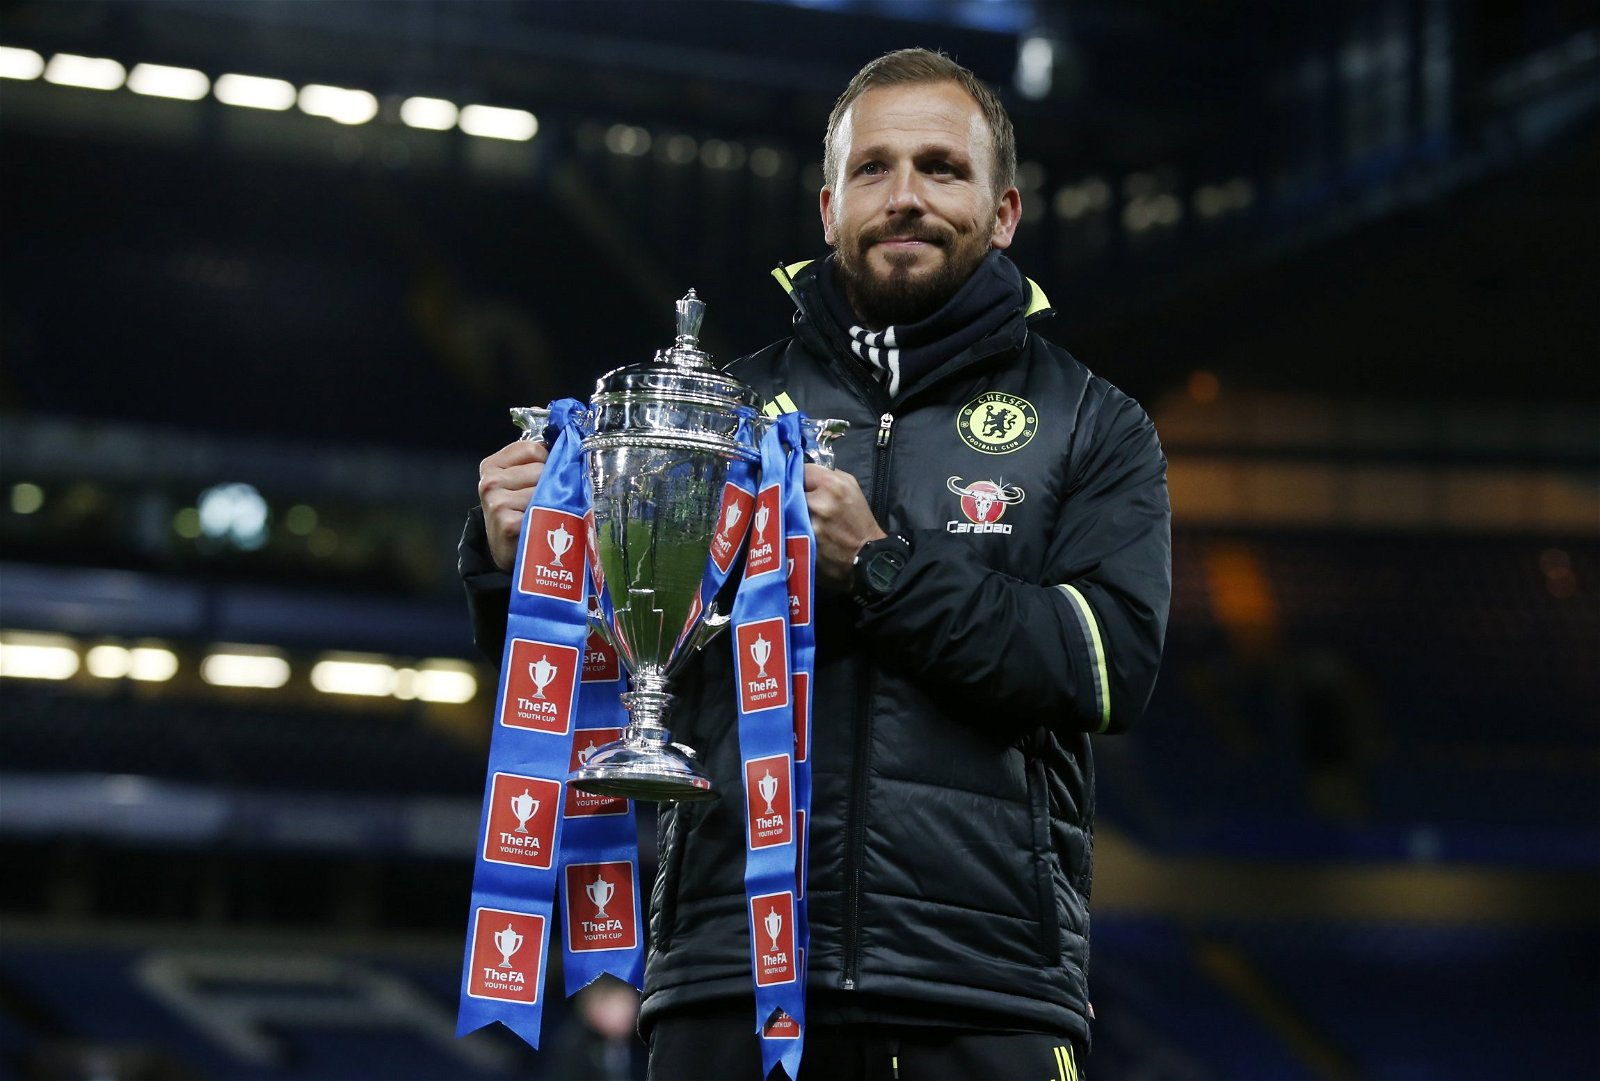 Chelsea coach Jody Morris lifts the FA Youth Cup